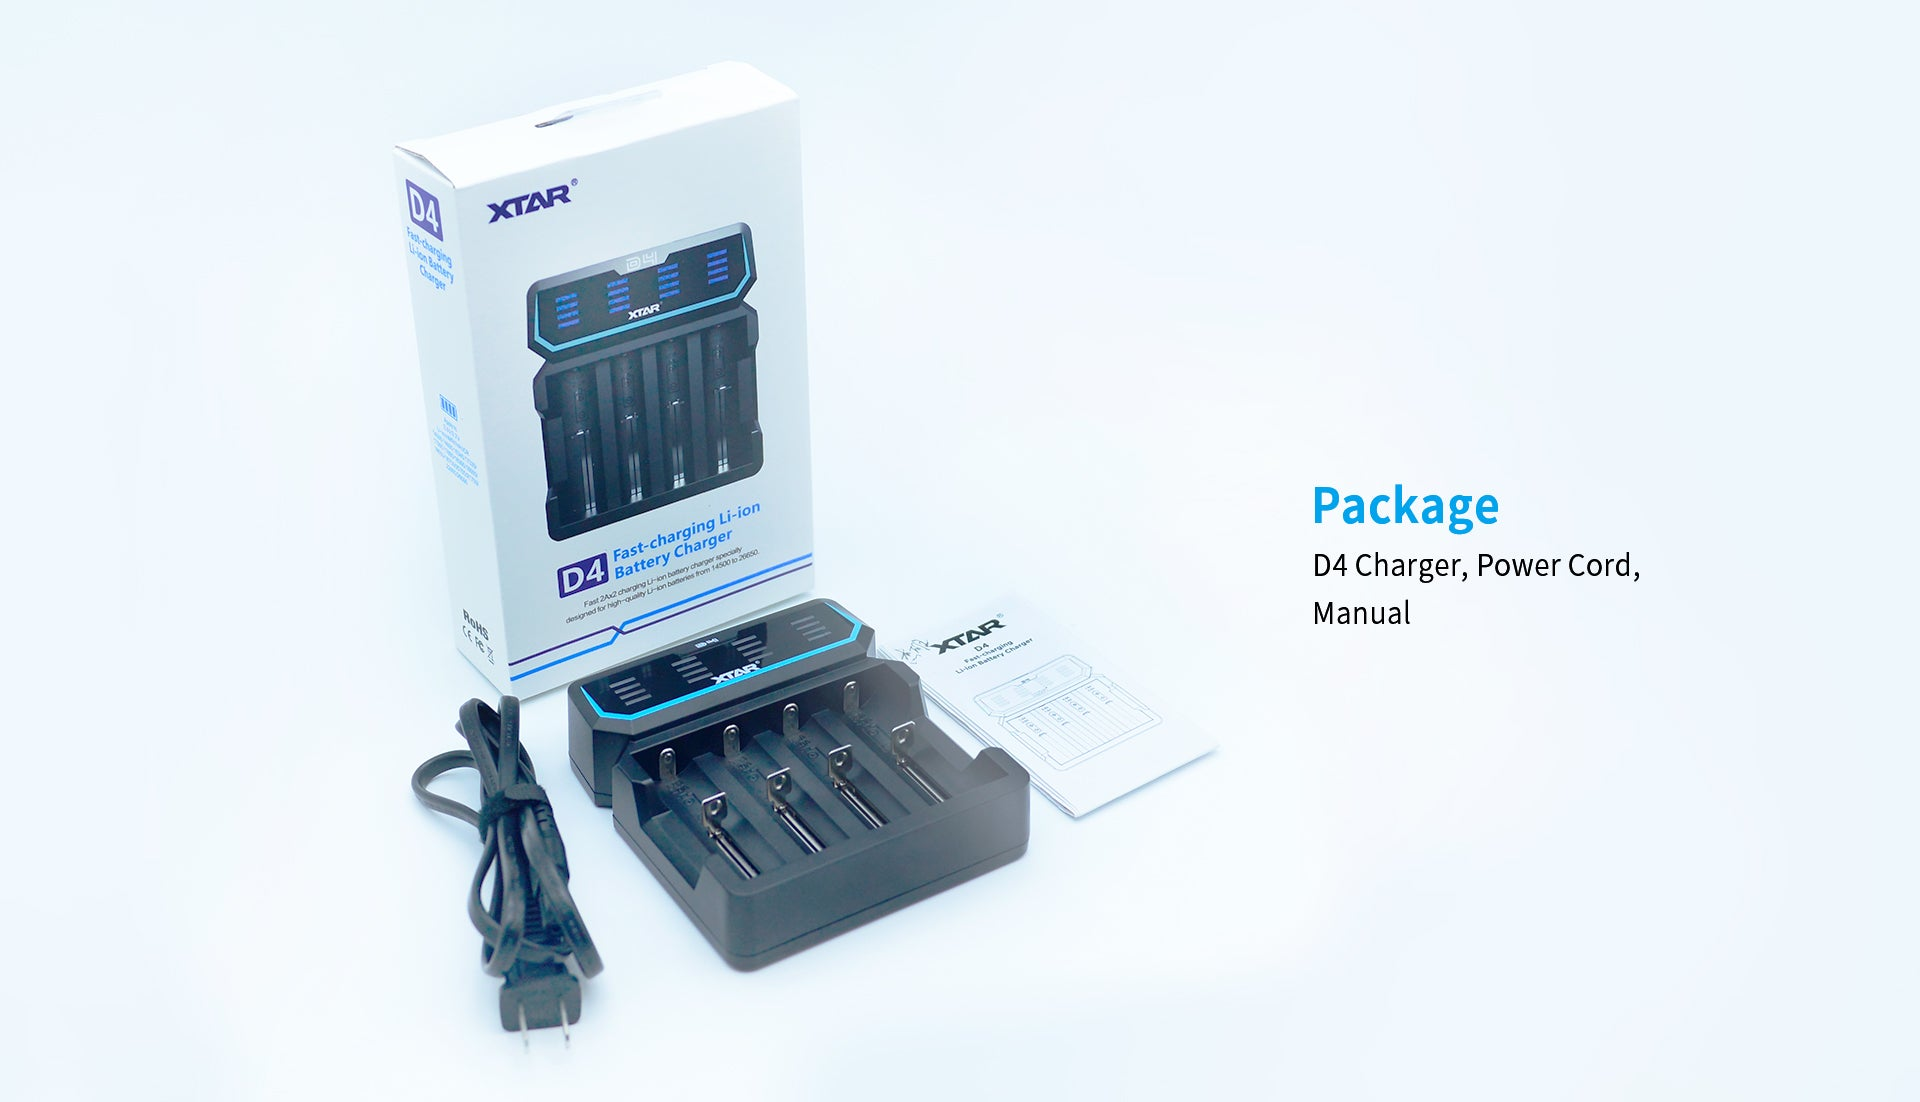 XTAR D4 - Fast-Charging Li-ion Battery Charger